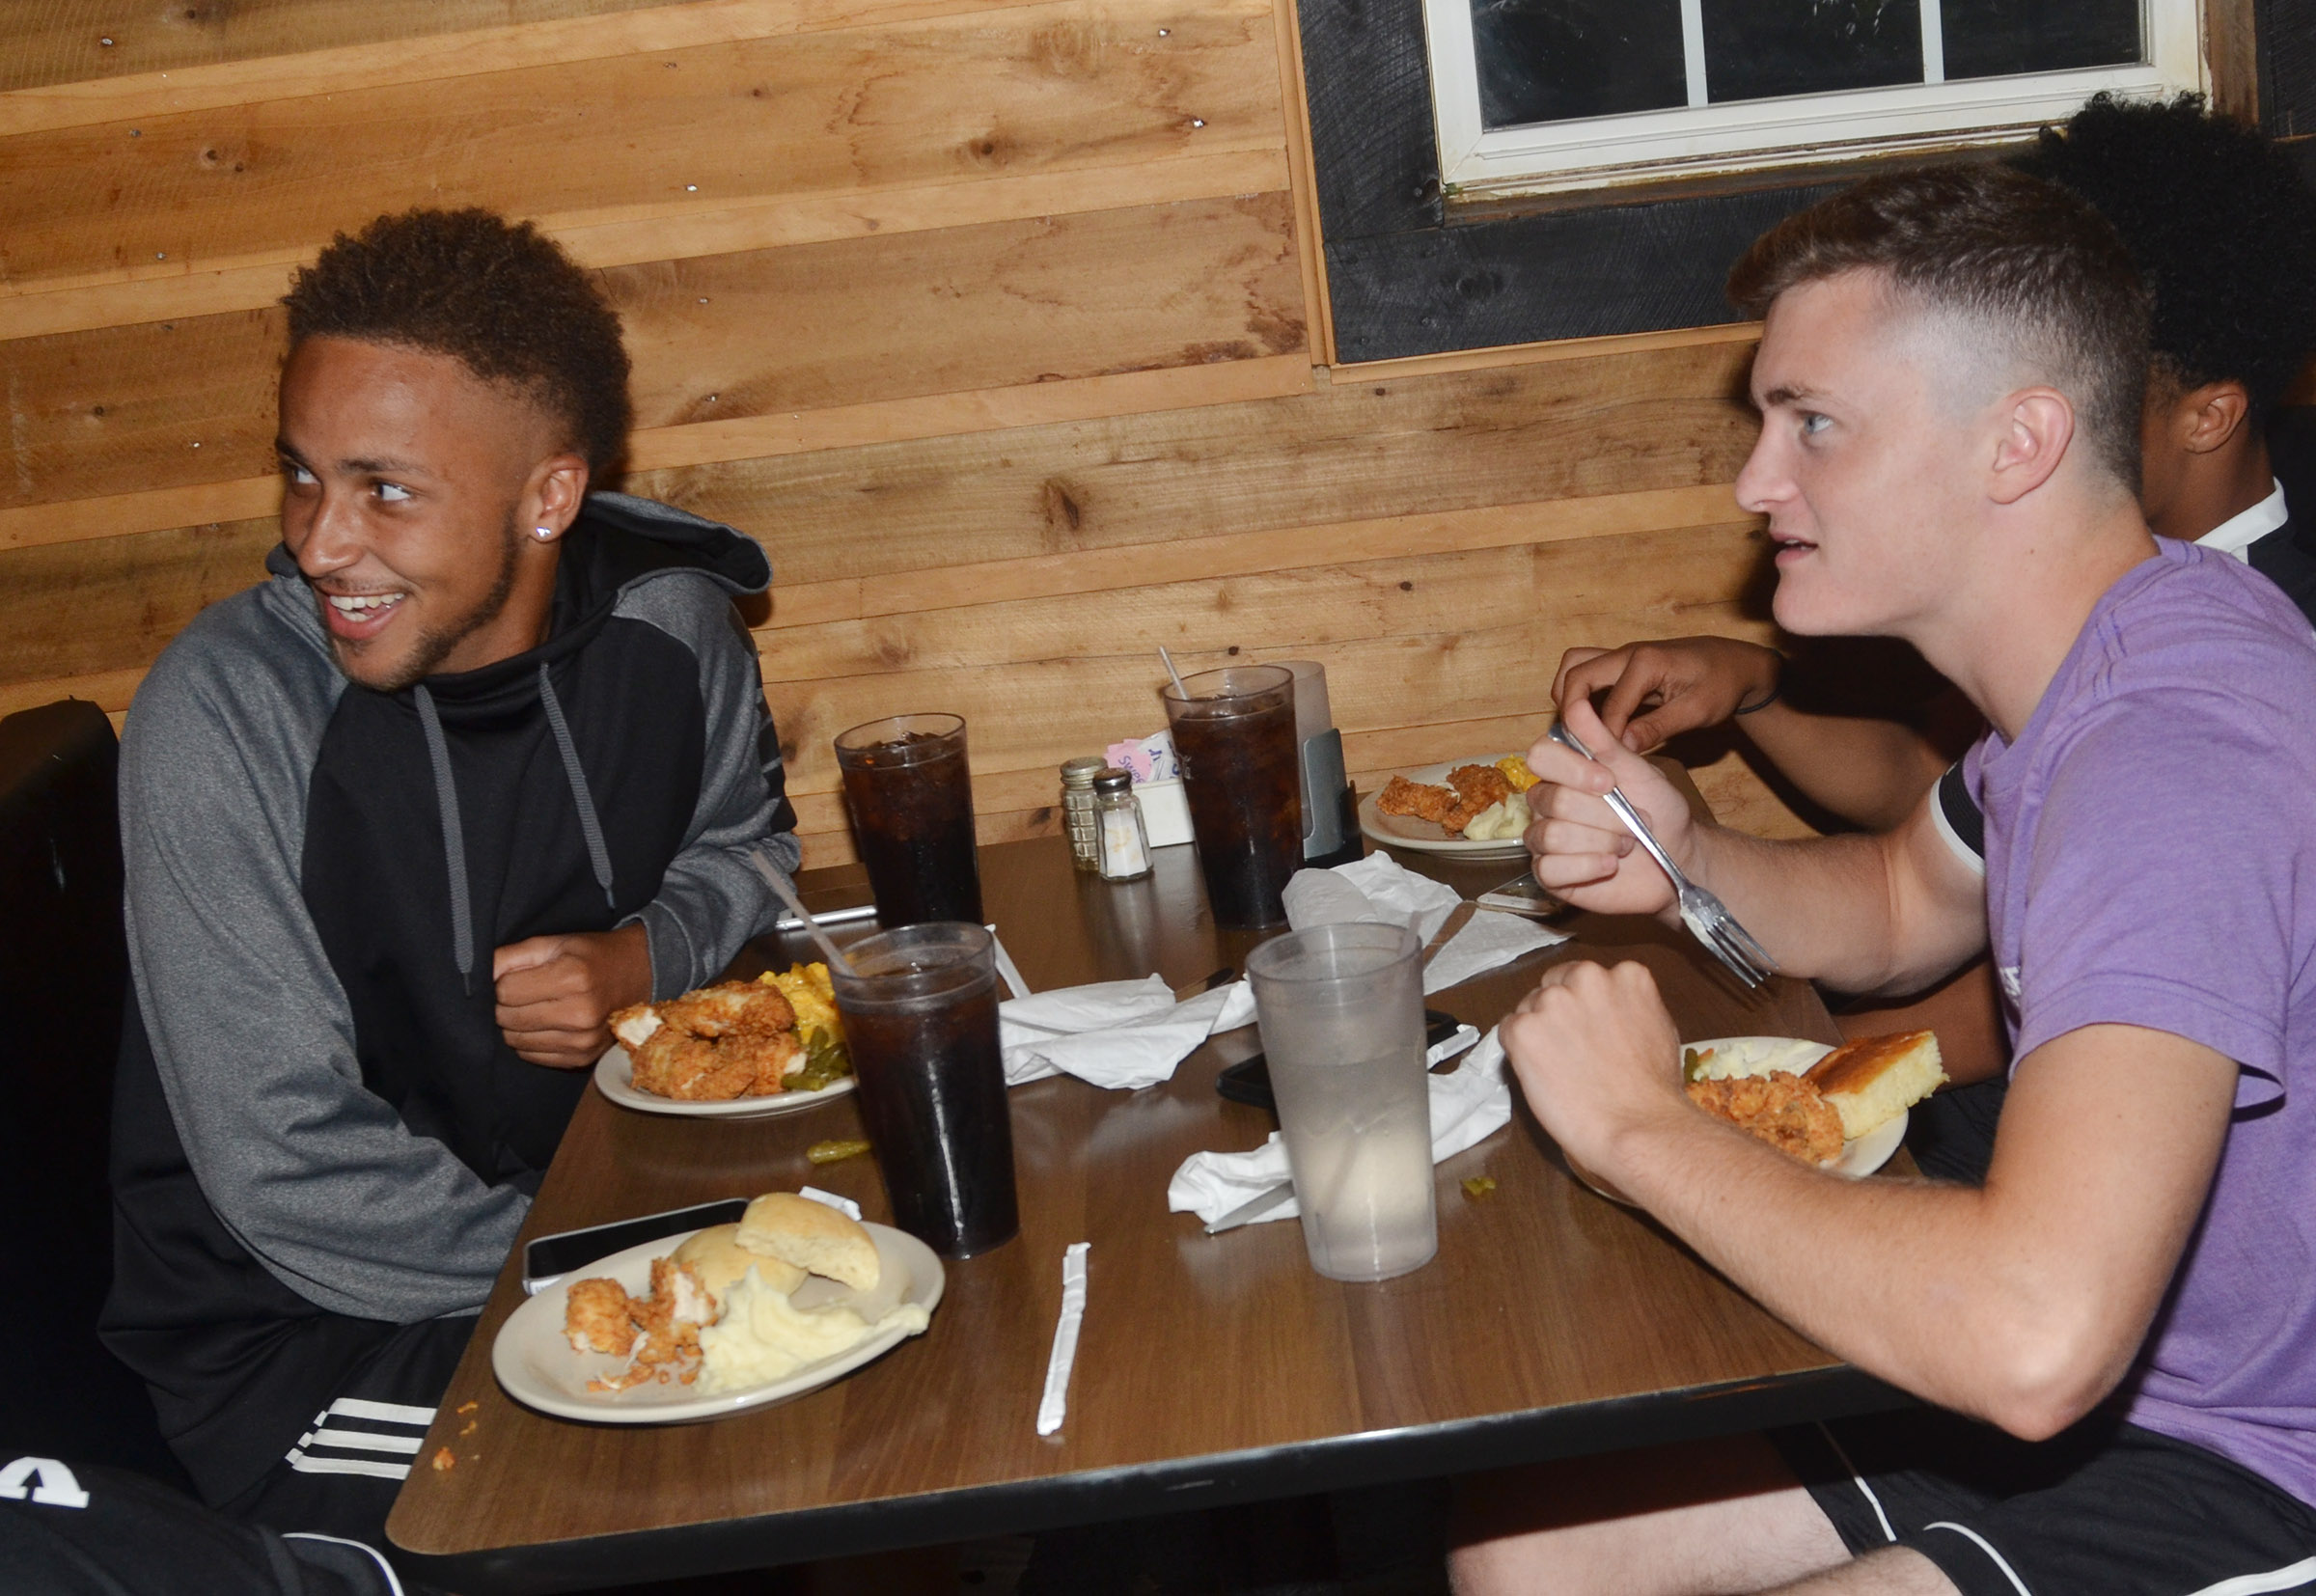 CHS seniors Ethan Lay, at left, and Bryce Richardson eat together as the team celebrates at Creek Side Restaurant.